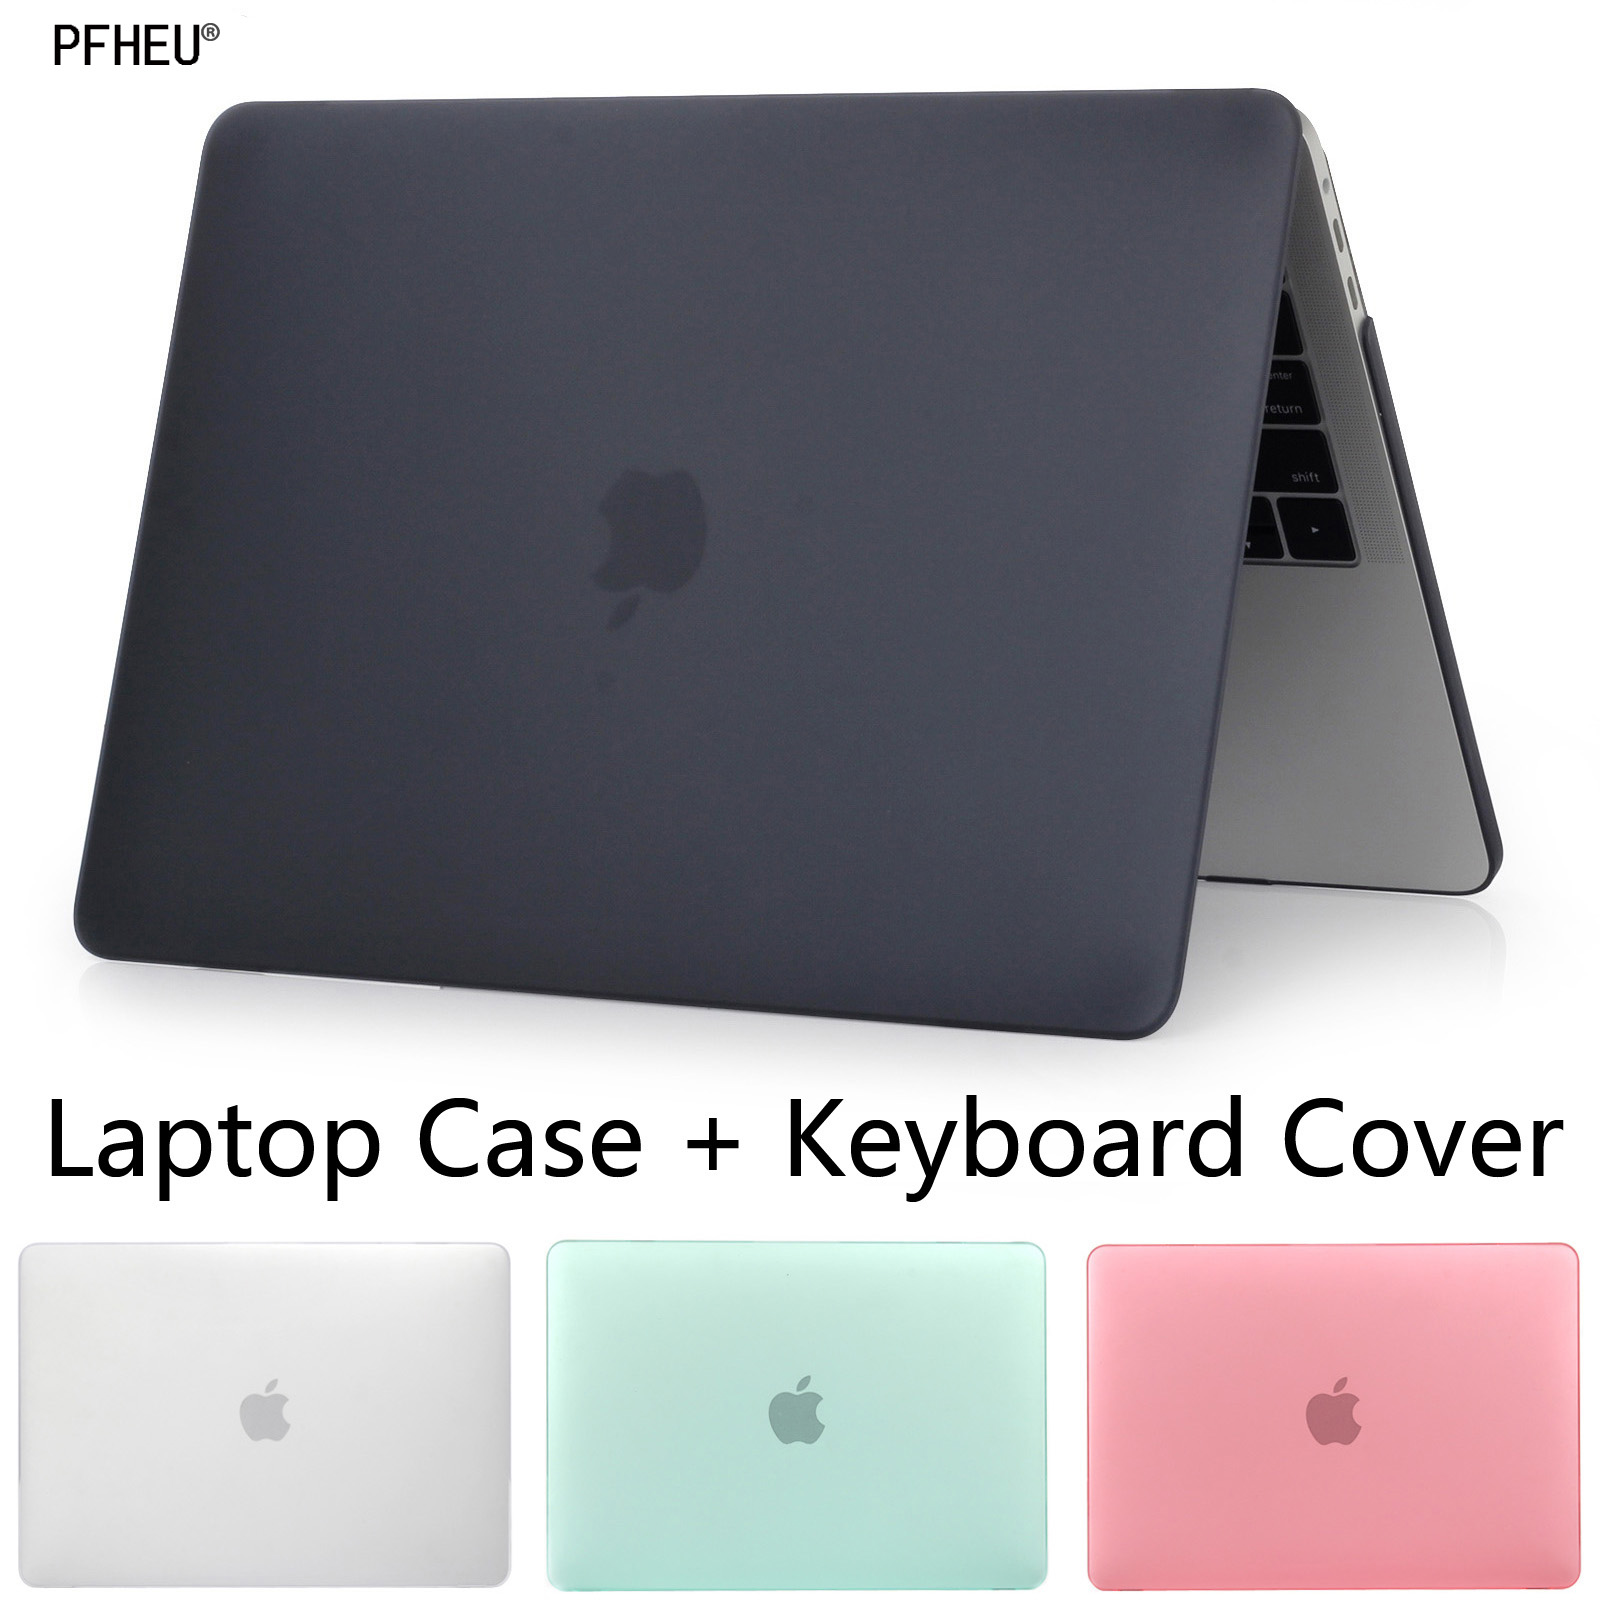 PFHEU HOT Sell laptop Case For Apple macbook Air Pro Retina 11 12 13 15 For Mac book 13.3 inch with Touch Bar +Keyboard Cover